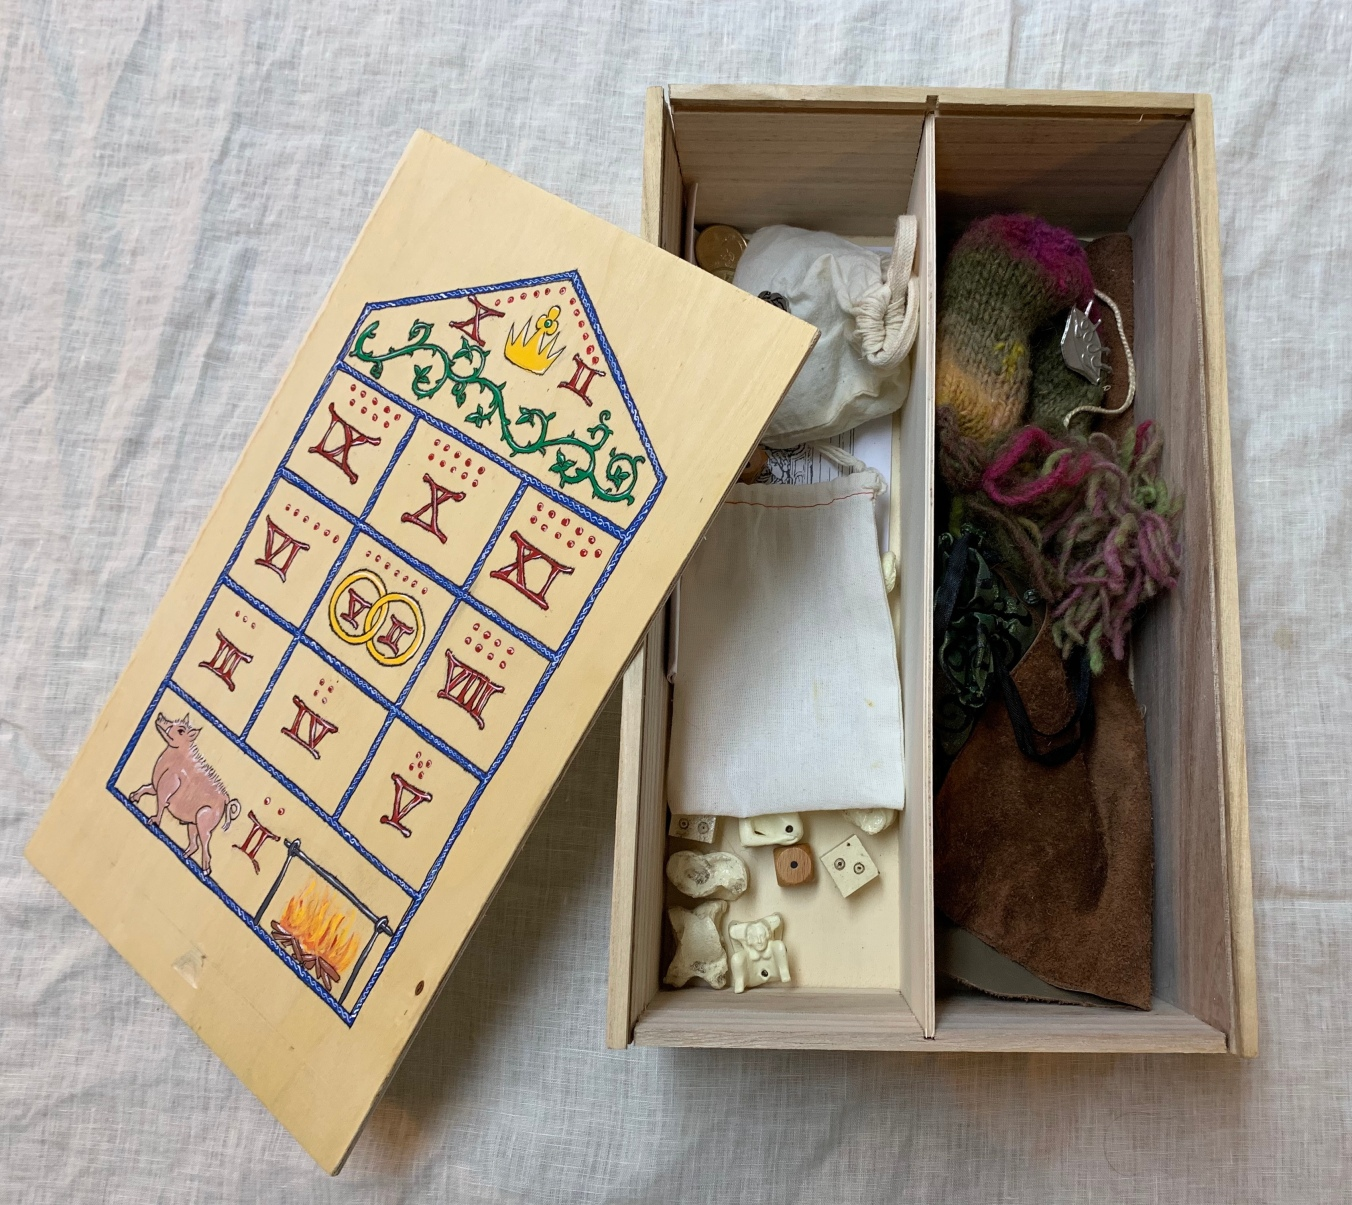 Stocking a Medieval Games Box